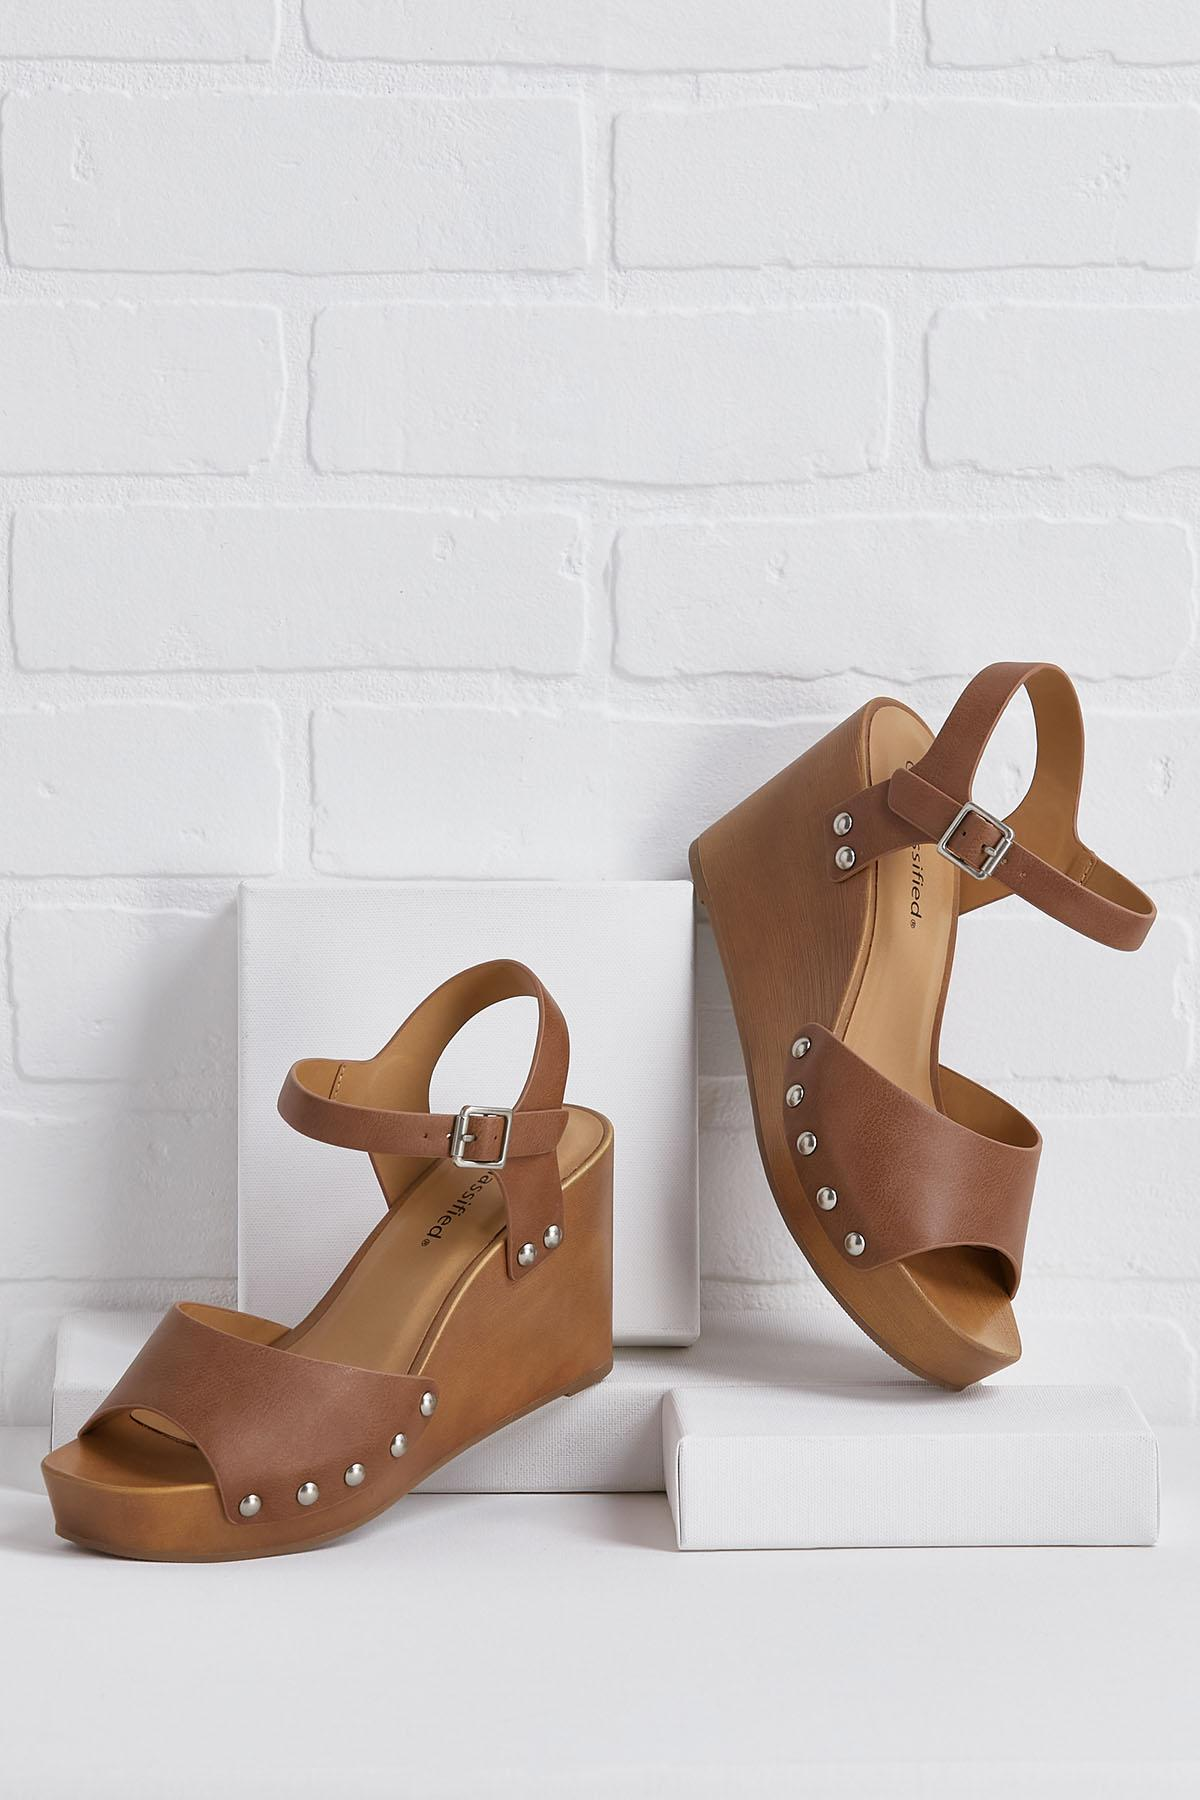 Confidence Boost Wedges